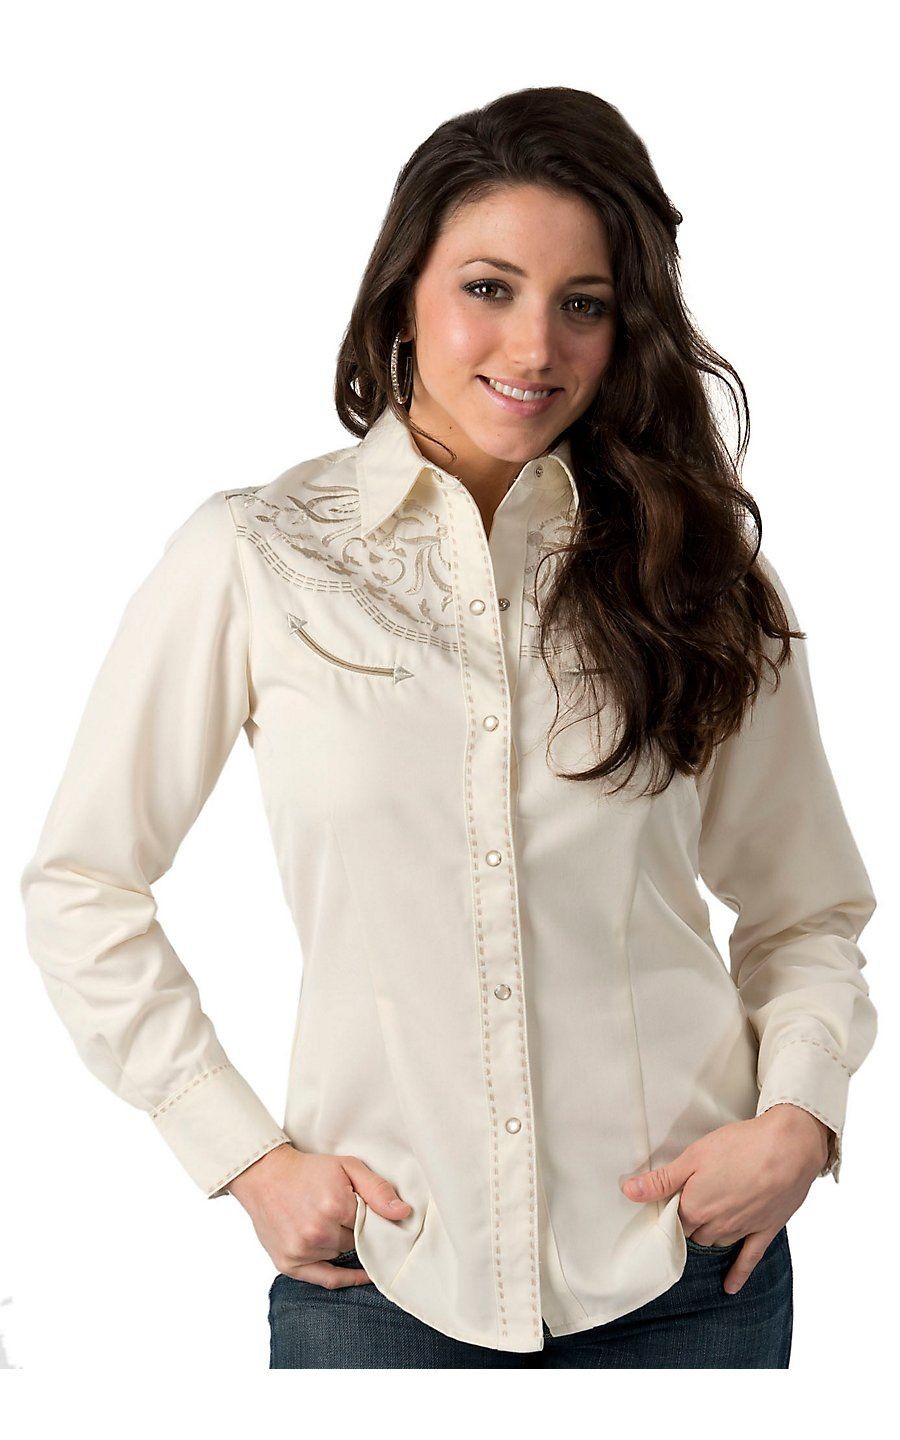 Buy Vintage Western Shirts for Women | Free Shipping $50+